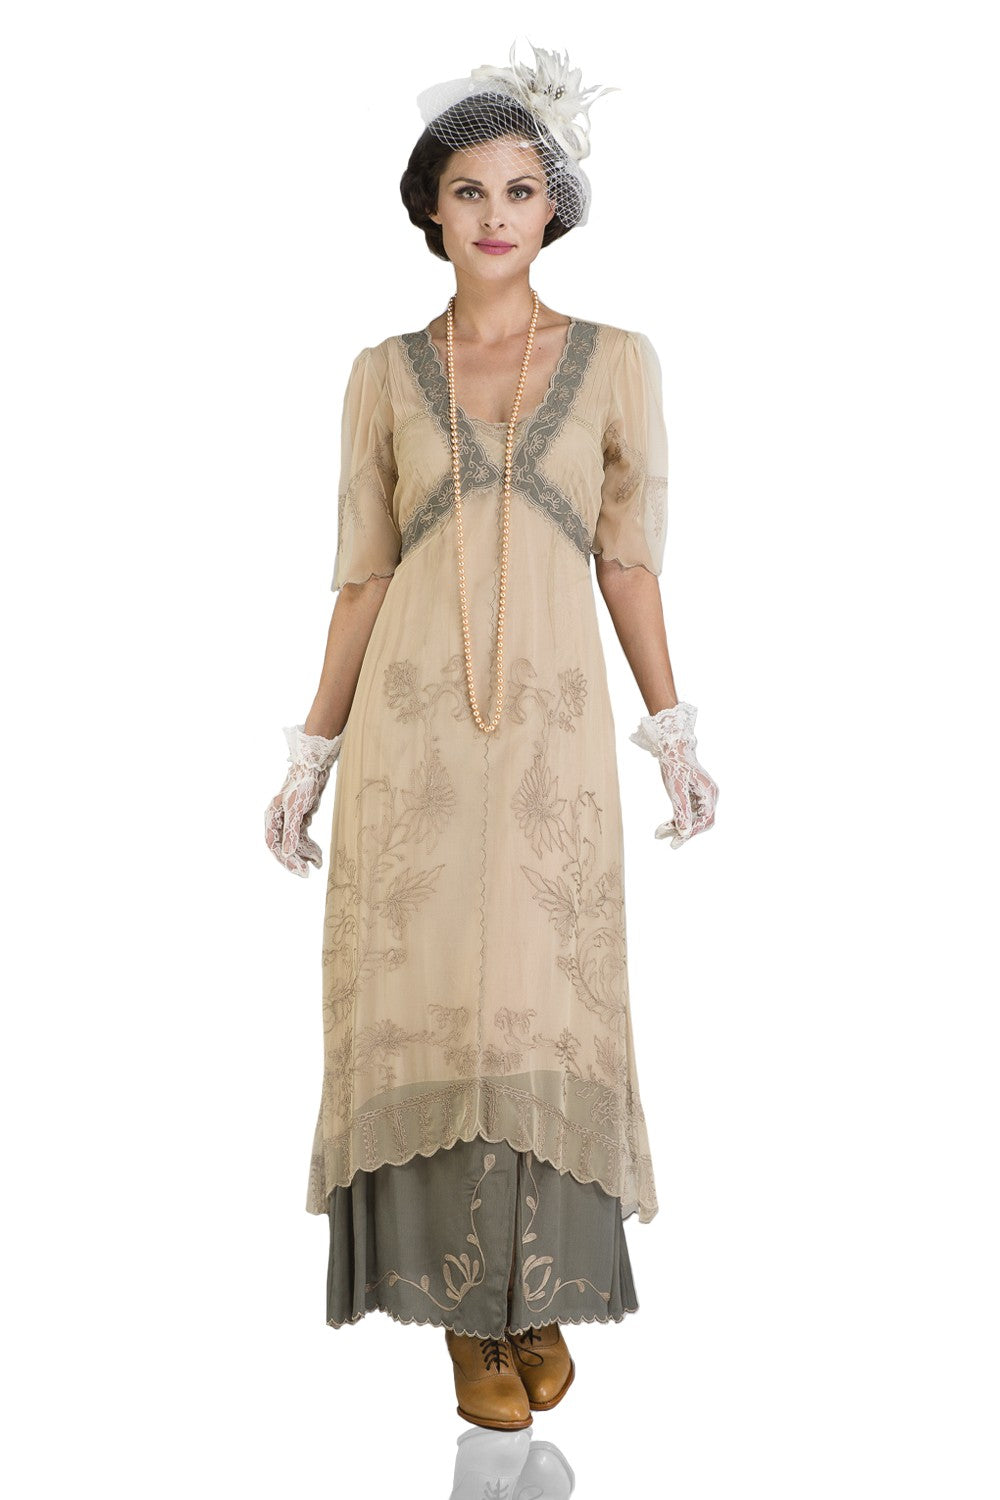 1900 -1910s Edwardian Fashion, Clothing & Costumes New Vintage Titanic Tea Party Dress in Sage by Nataya $228.00 AT vintagedancer.com